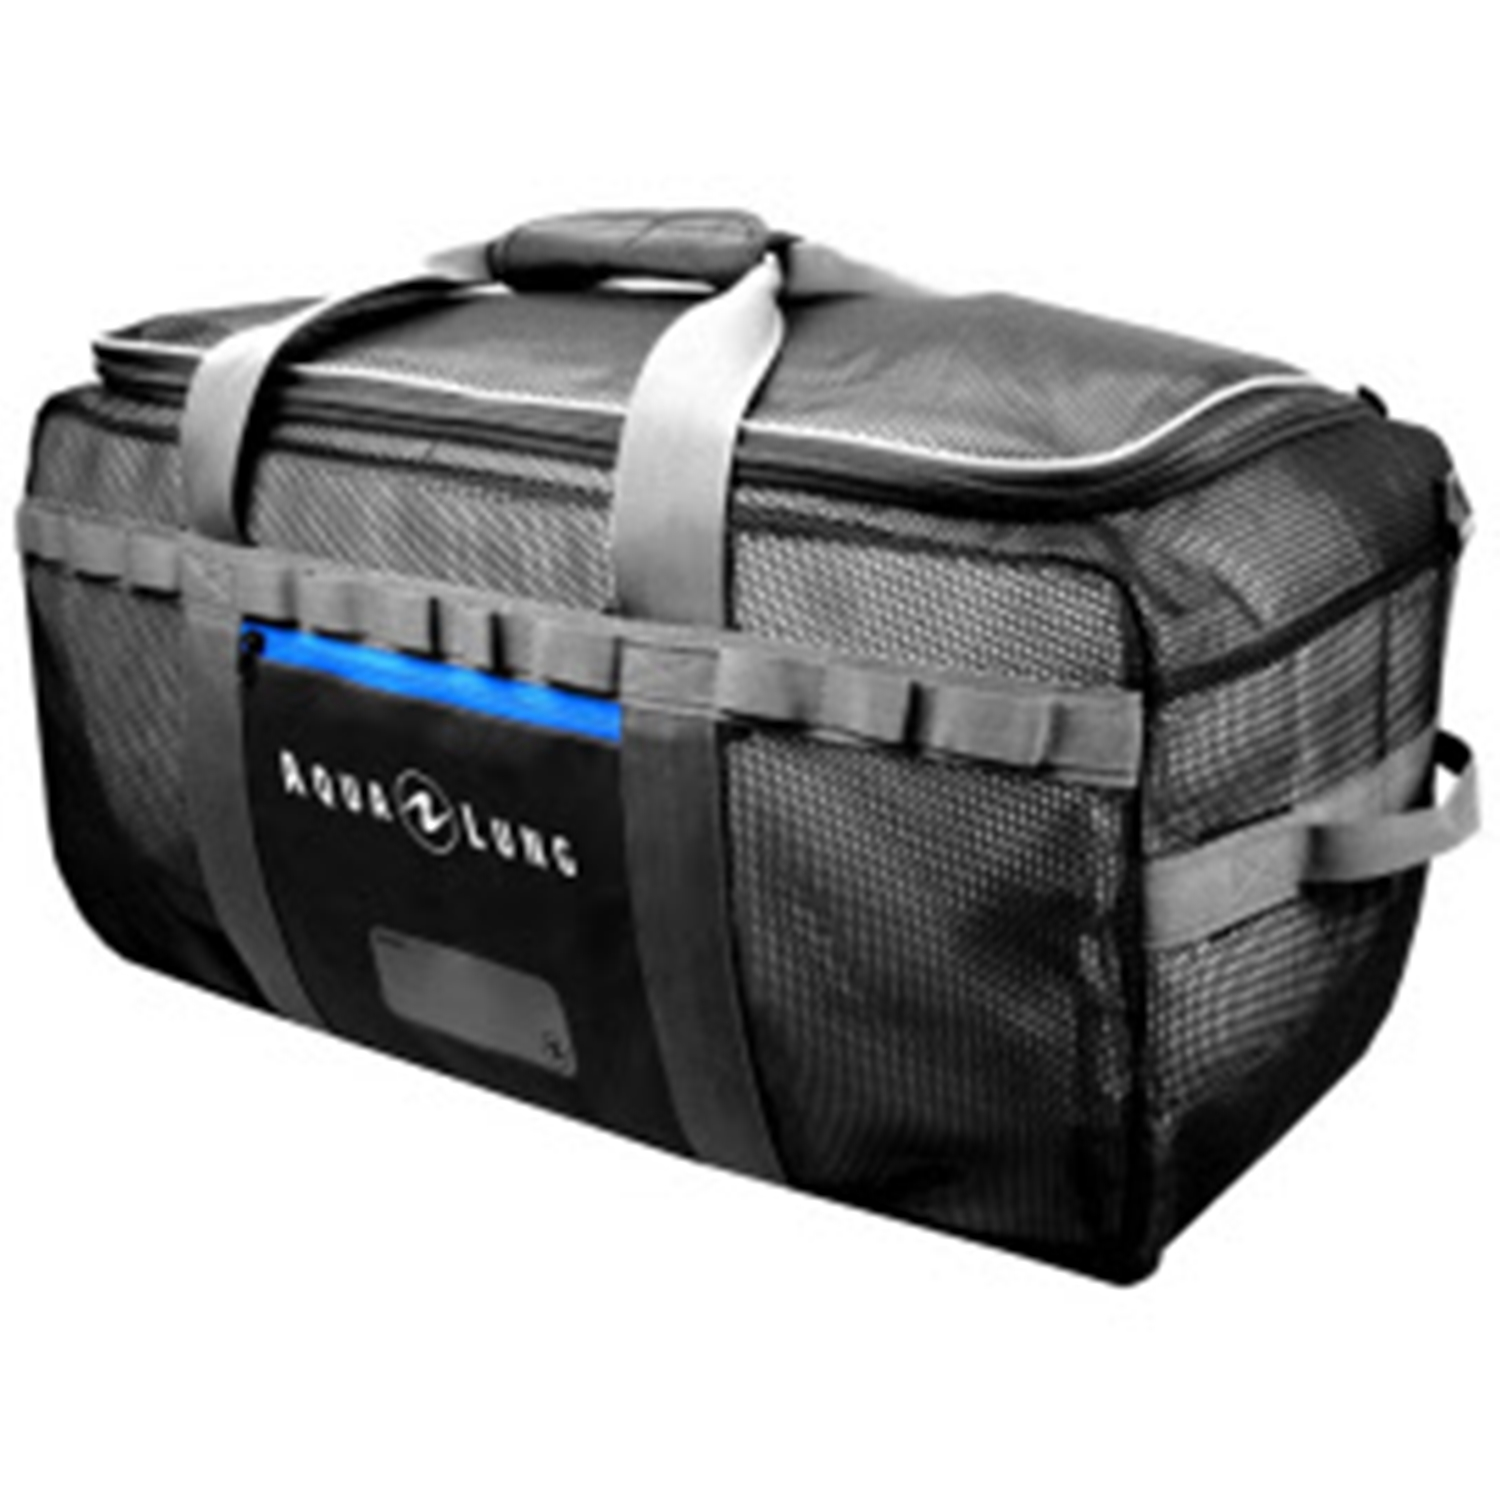 AquaLung Explorer Mesh Duffle Large Bag 29 x 12 x 14 Black